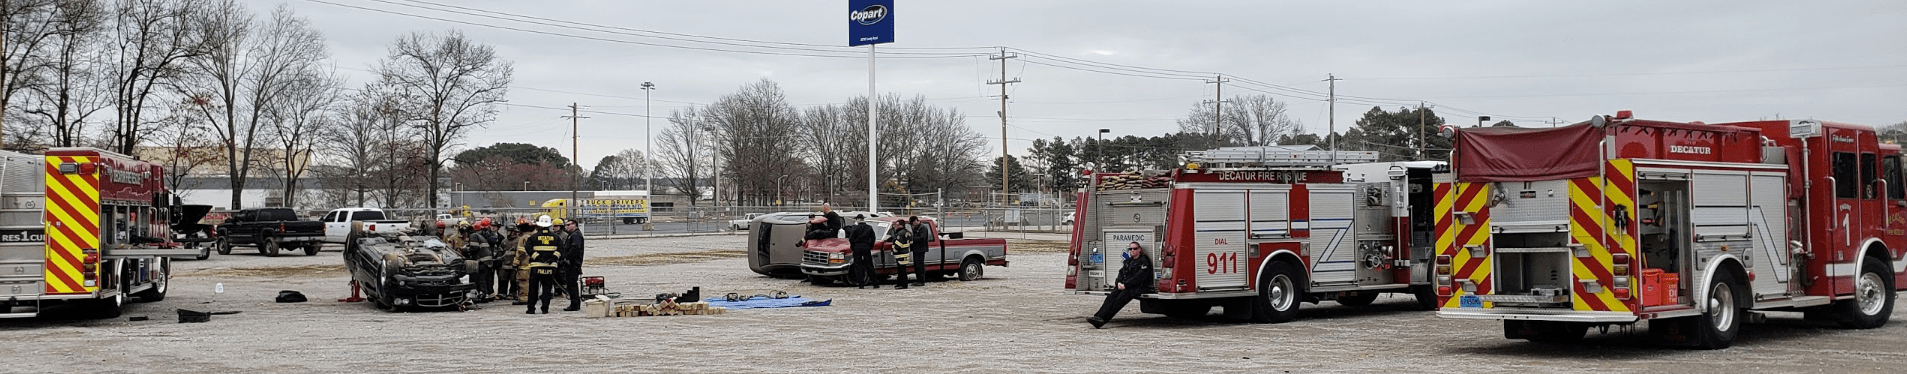 Alabama Fire College Training at Yard 66 3